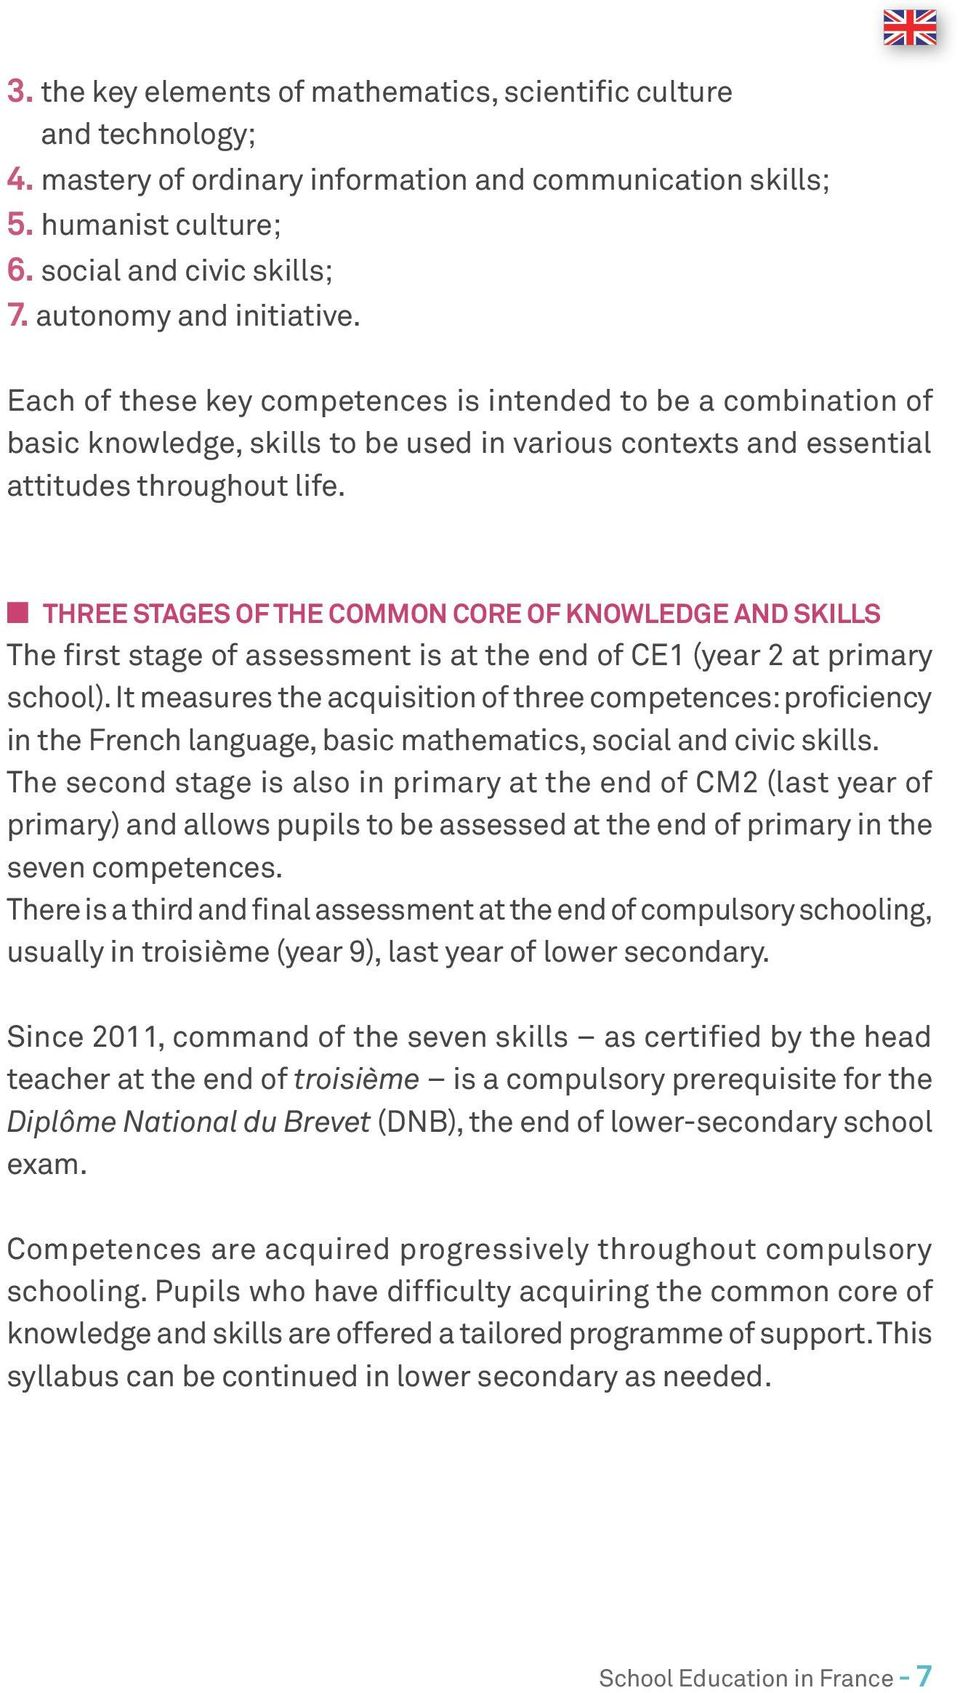 Three stages of the common core of knowledge and skills The first stage of assessment is at the end of CE1 (year 2 at primary school).